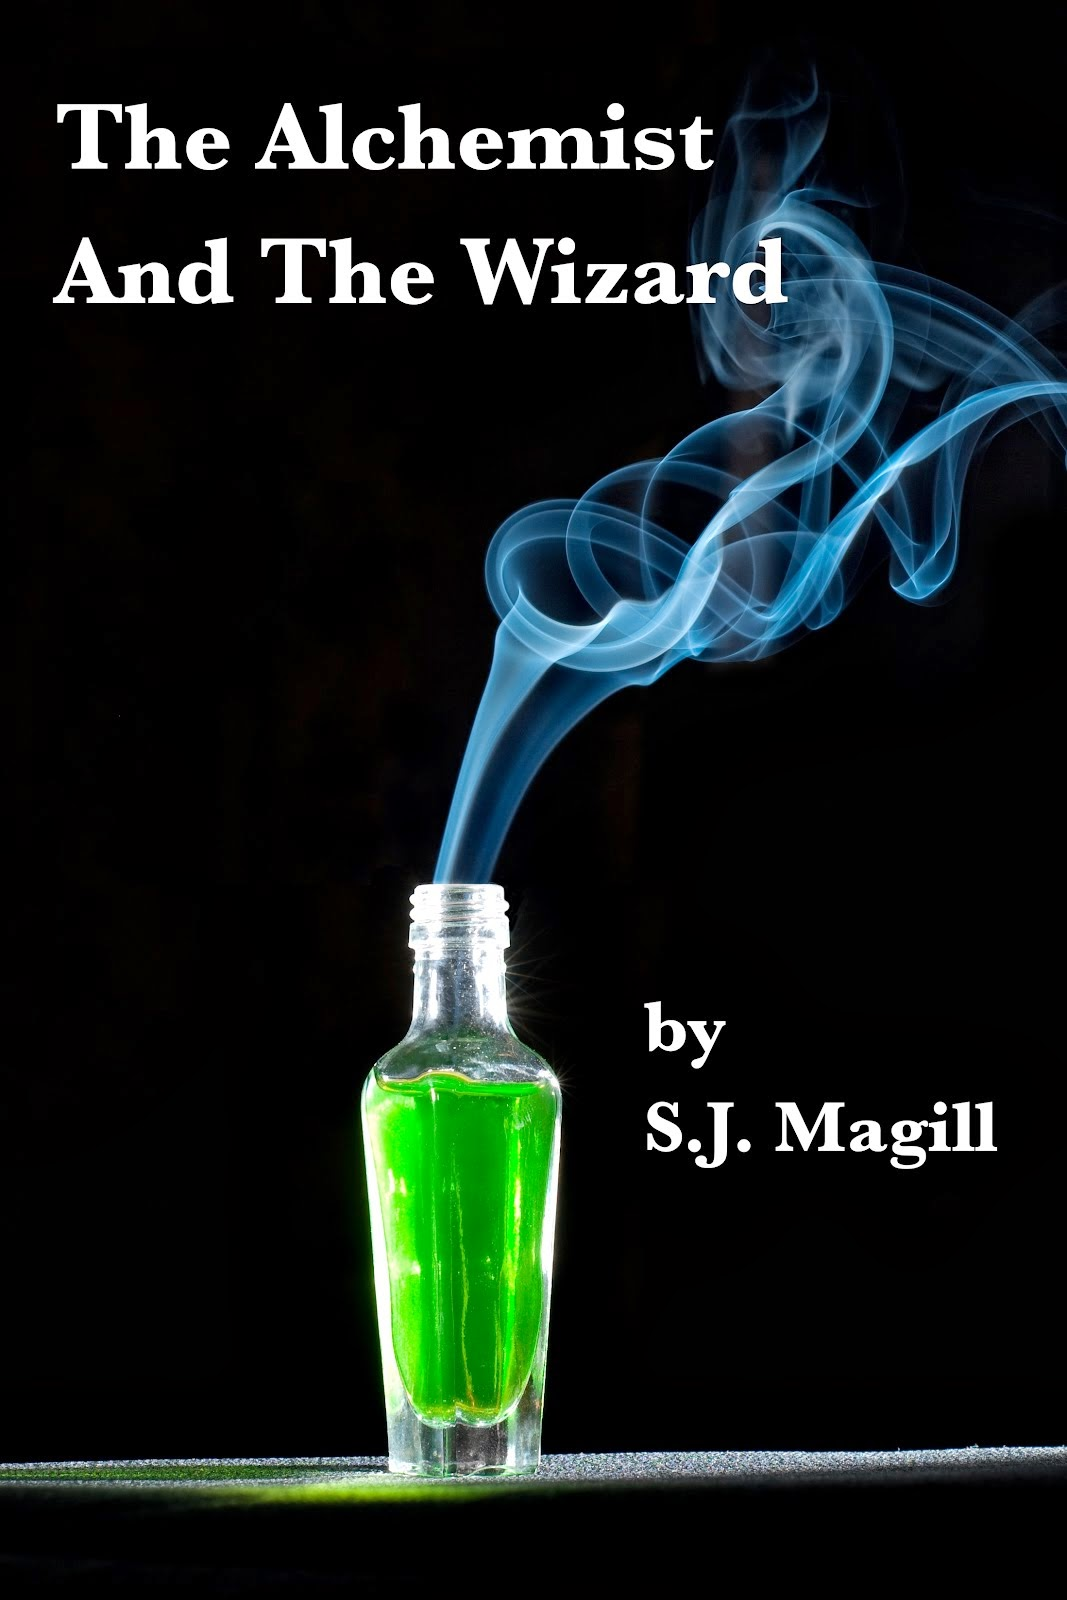 The Alchemist and the Wizard (Link to Amazon.com)